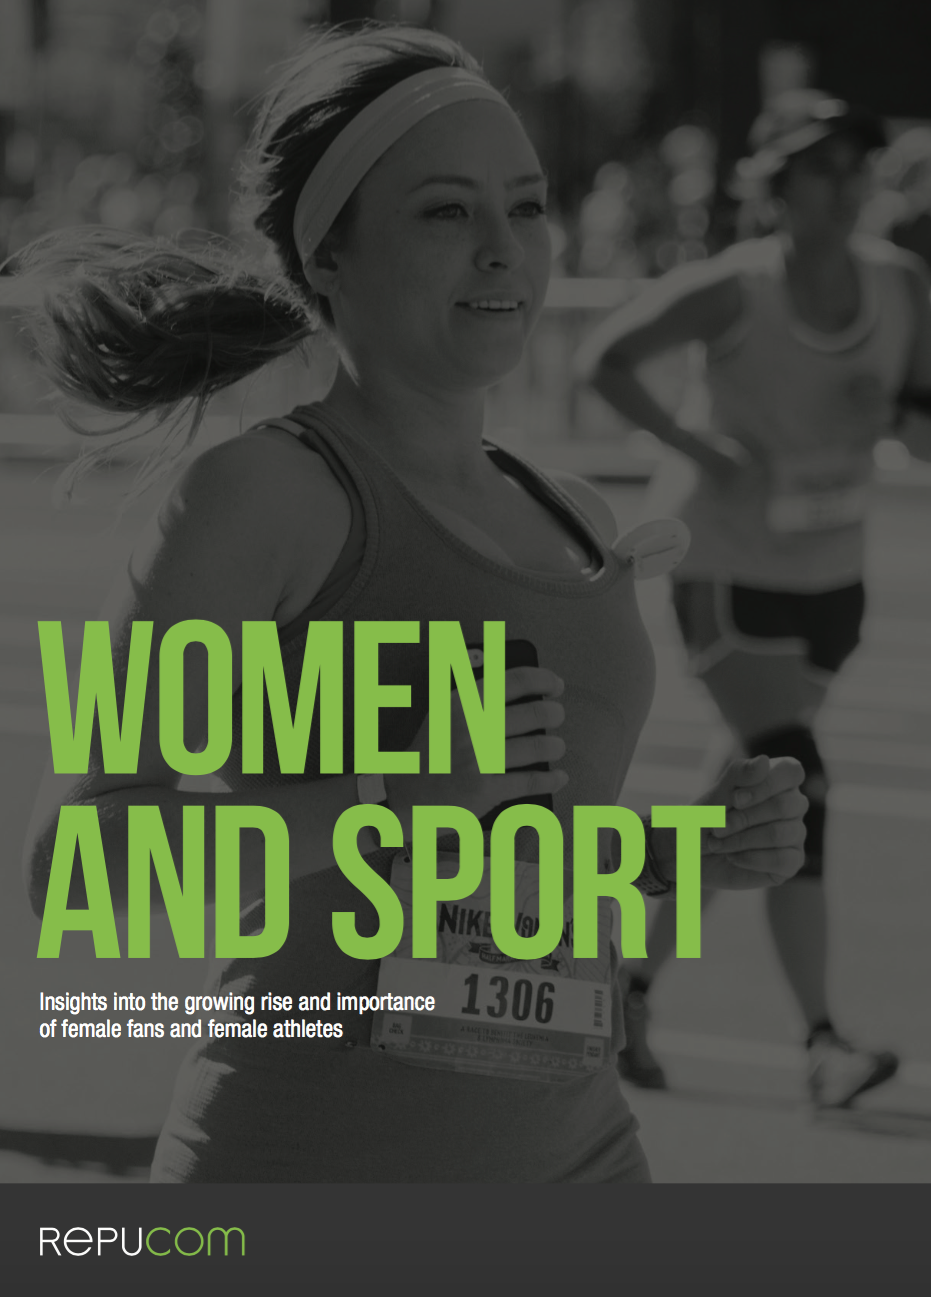 Insights into the growing rise and importance of female fans and female athletes